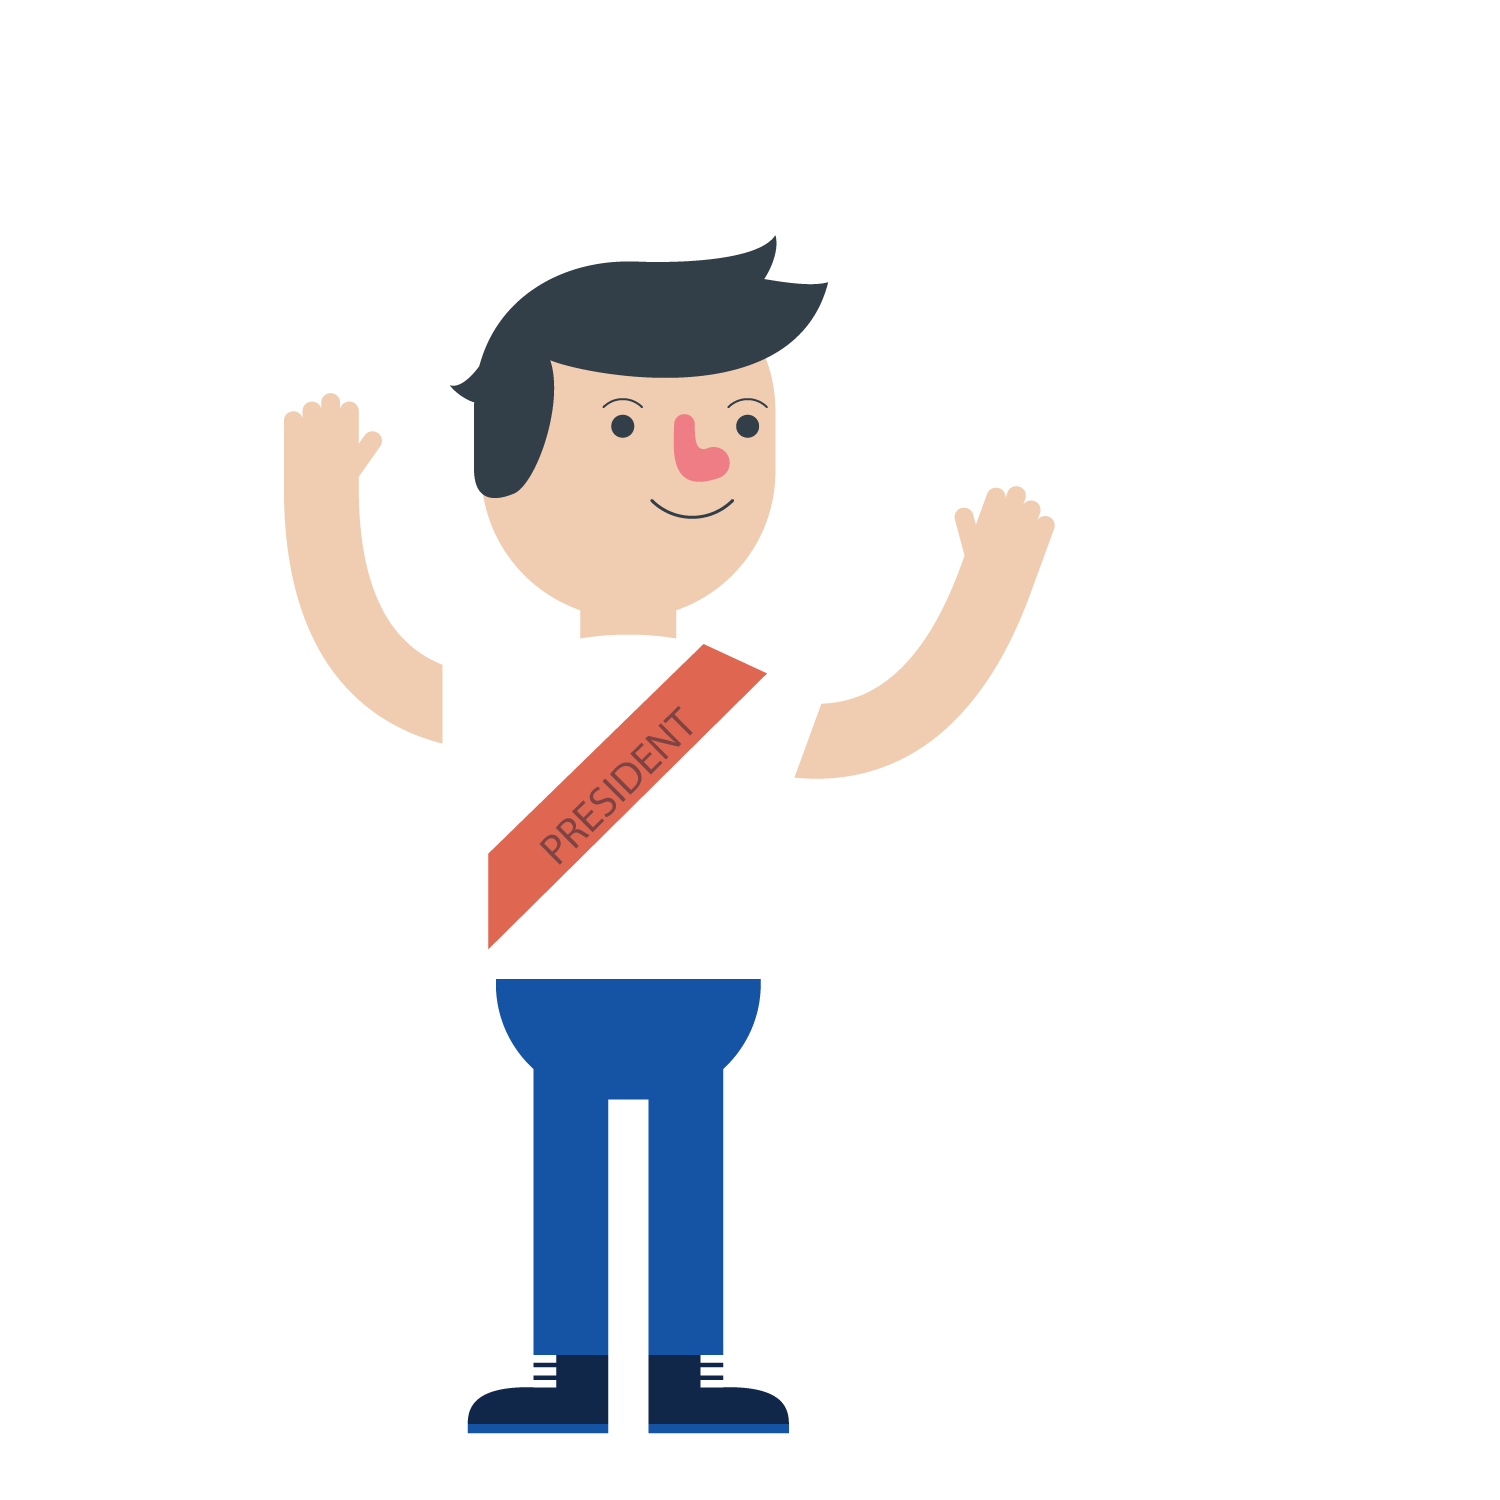 Human clipart college student. Cartoon estudante welcome students